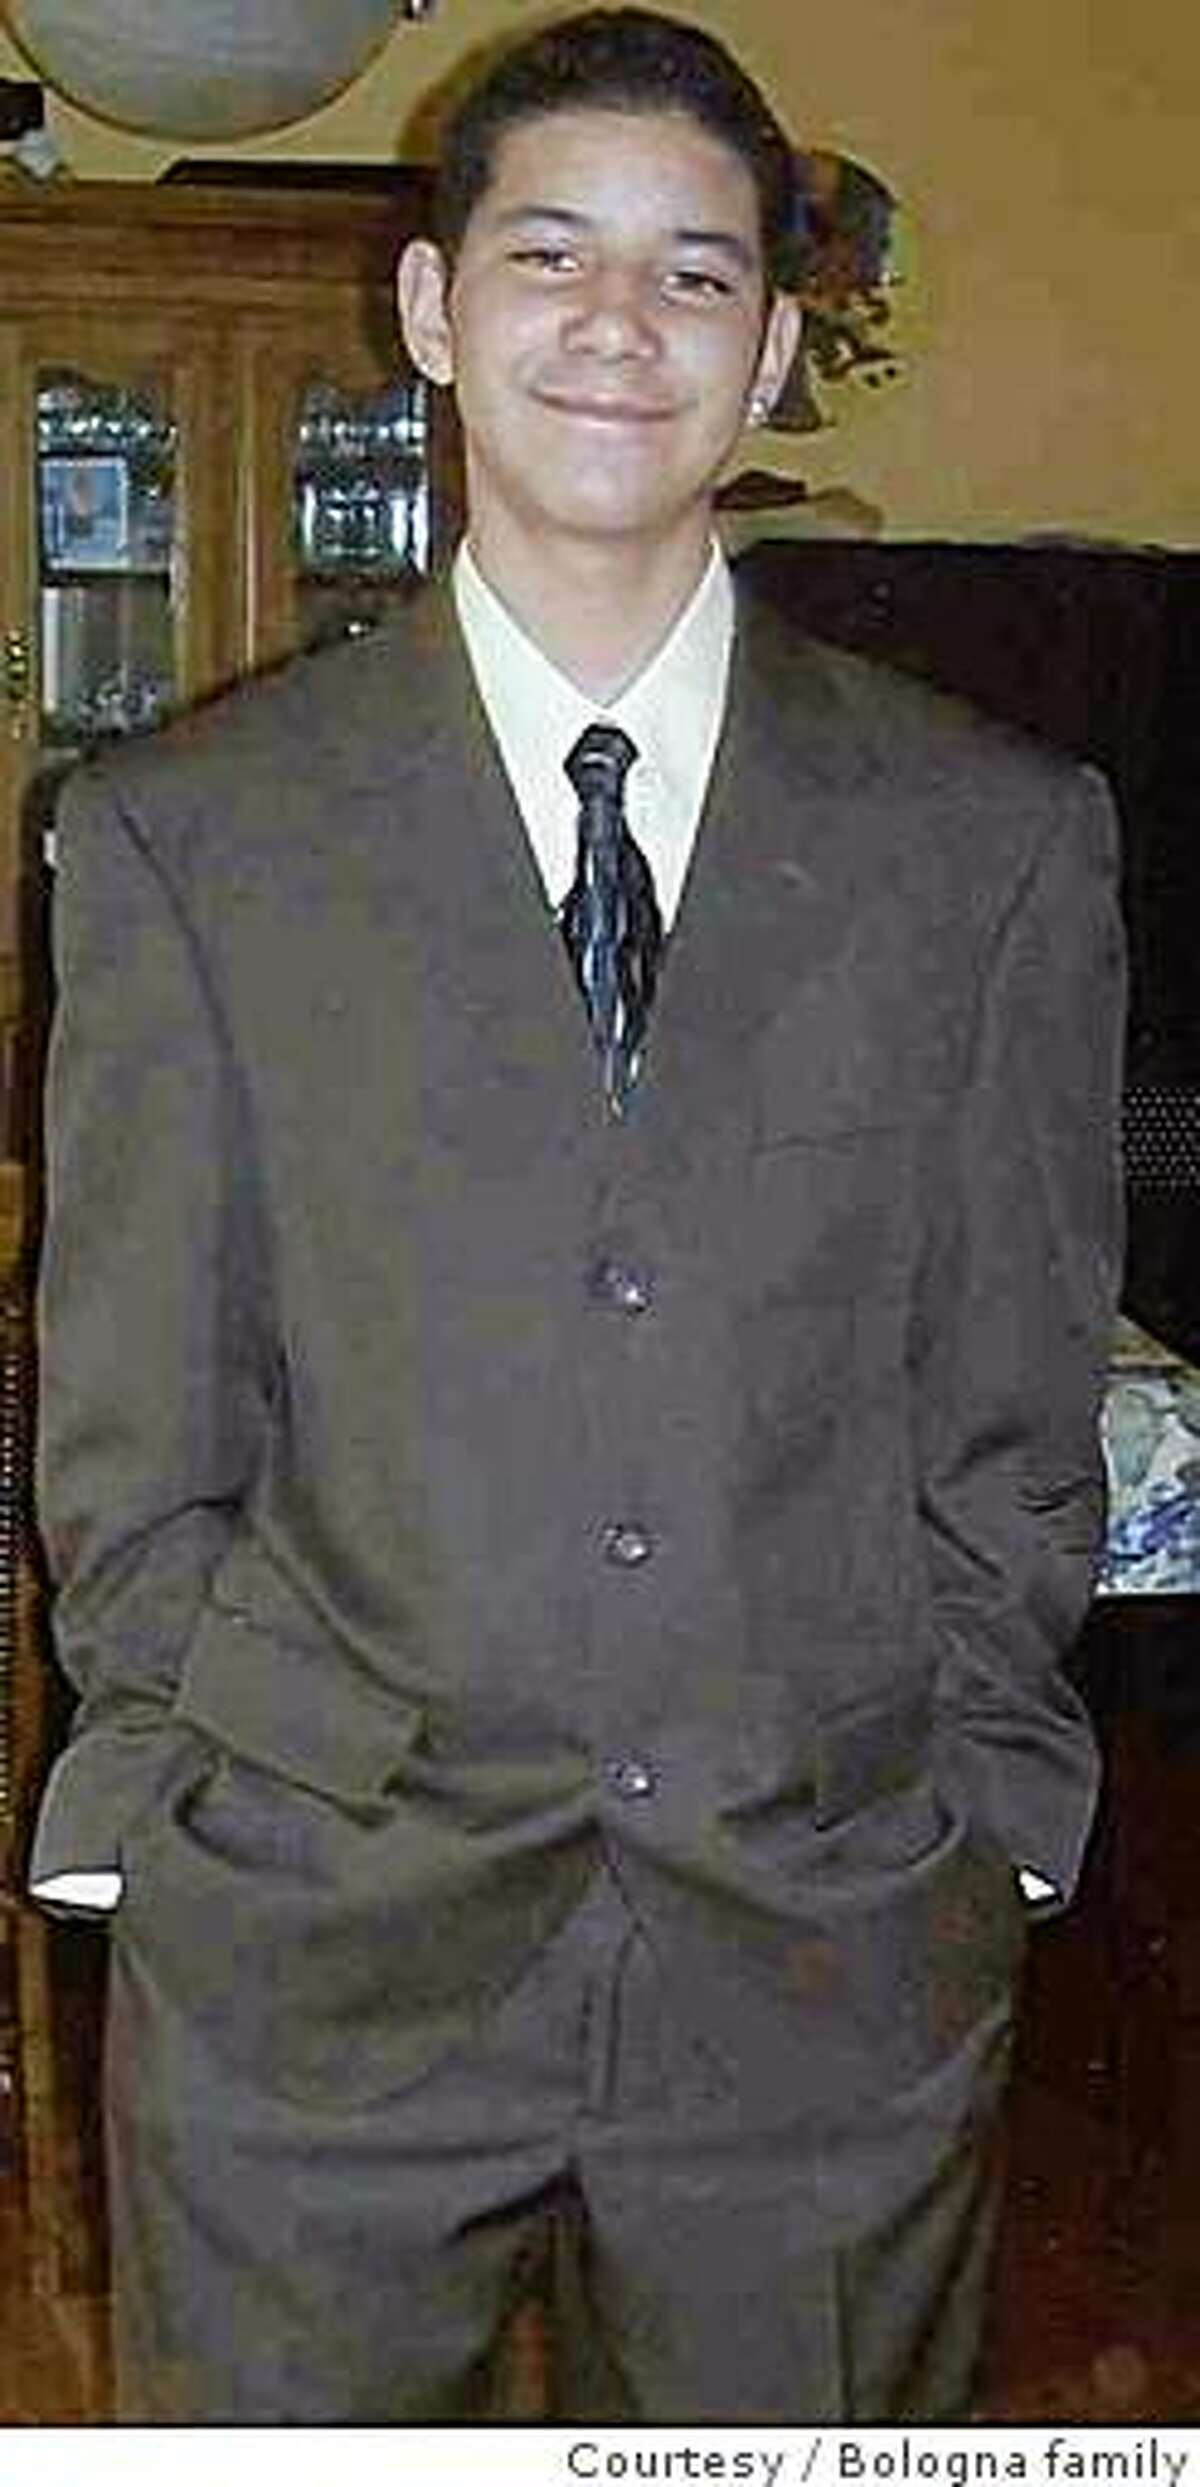 Matthew Bologna at a family function in 2008. He was slain June 22, 2008, in San Francisco, along with his father and an older brother.